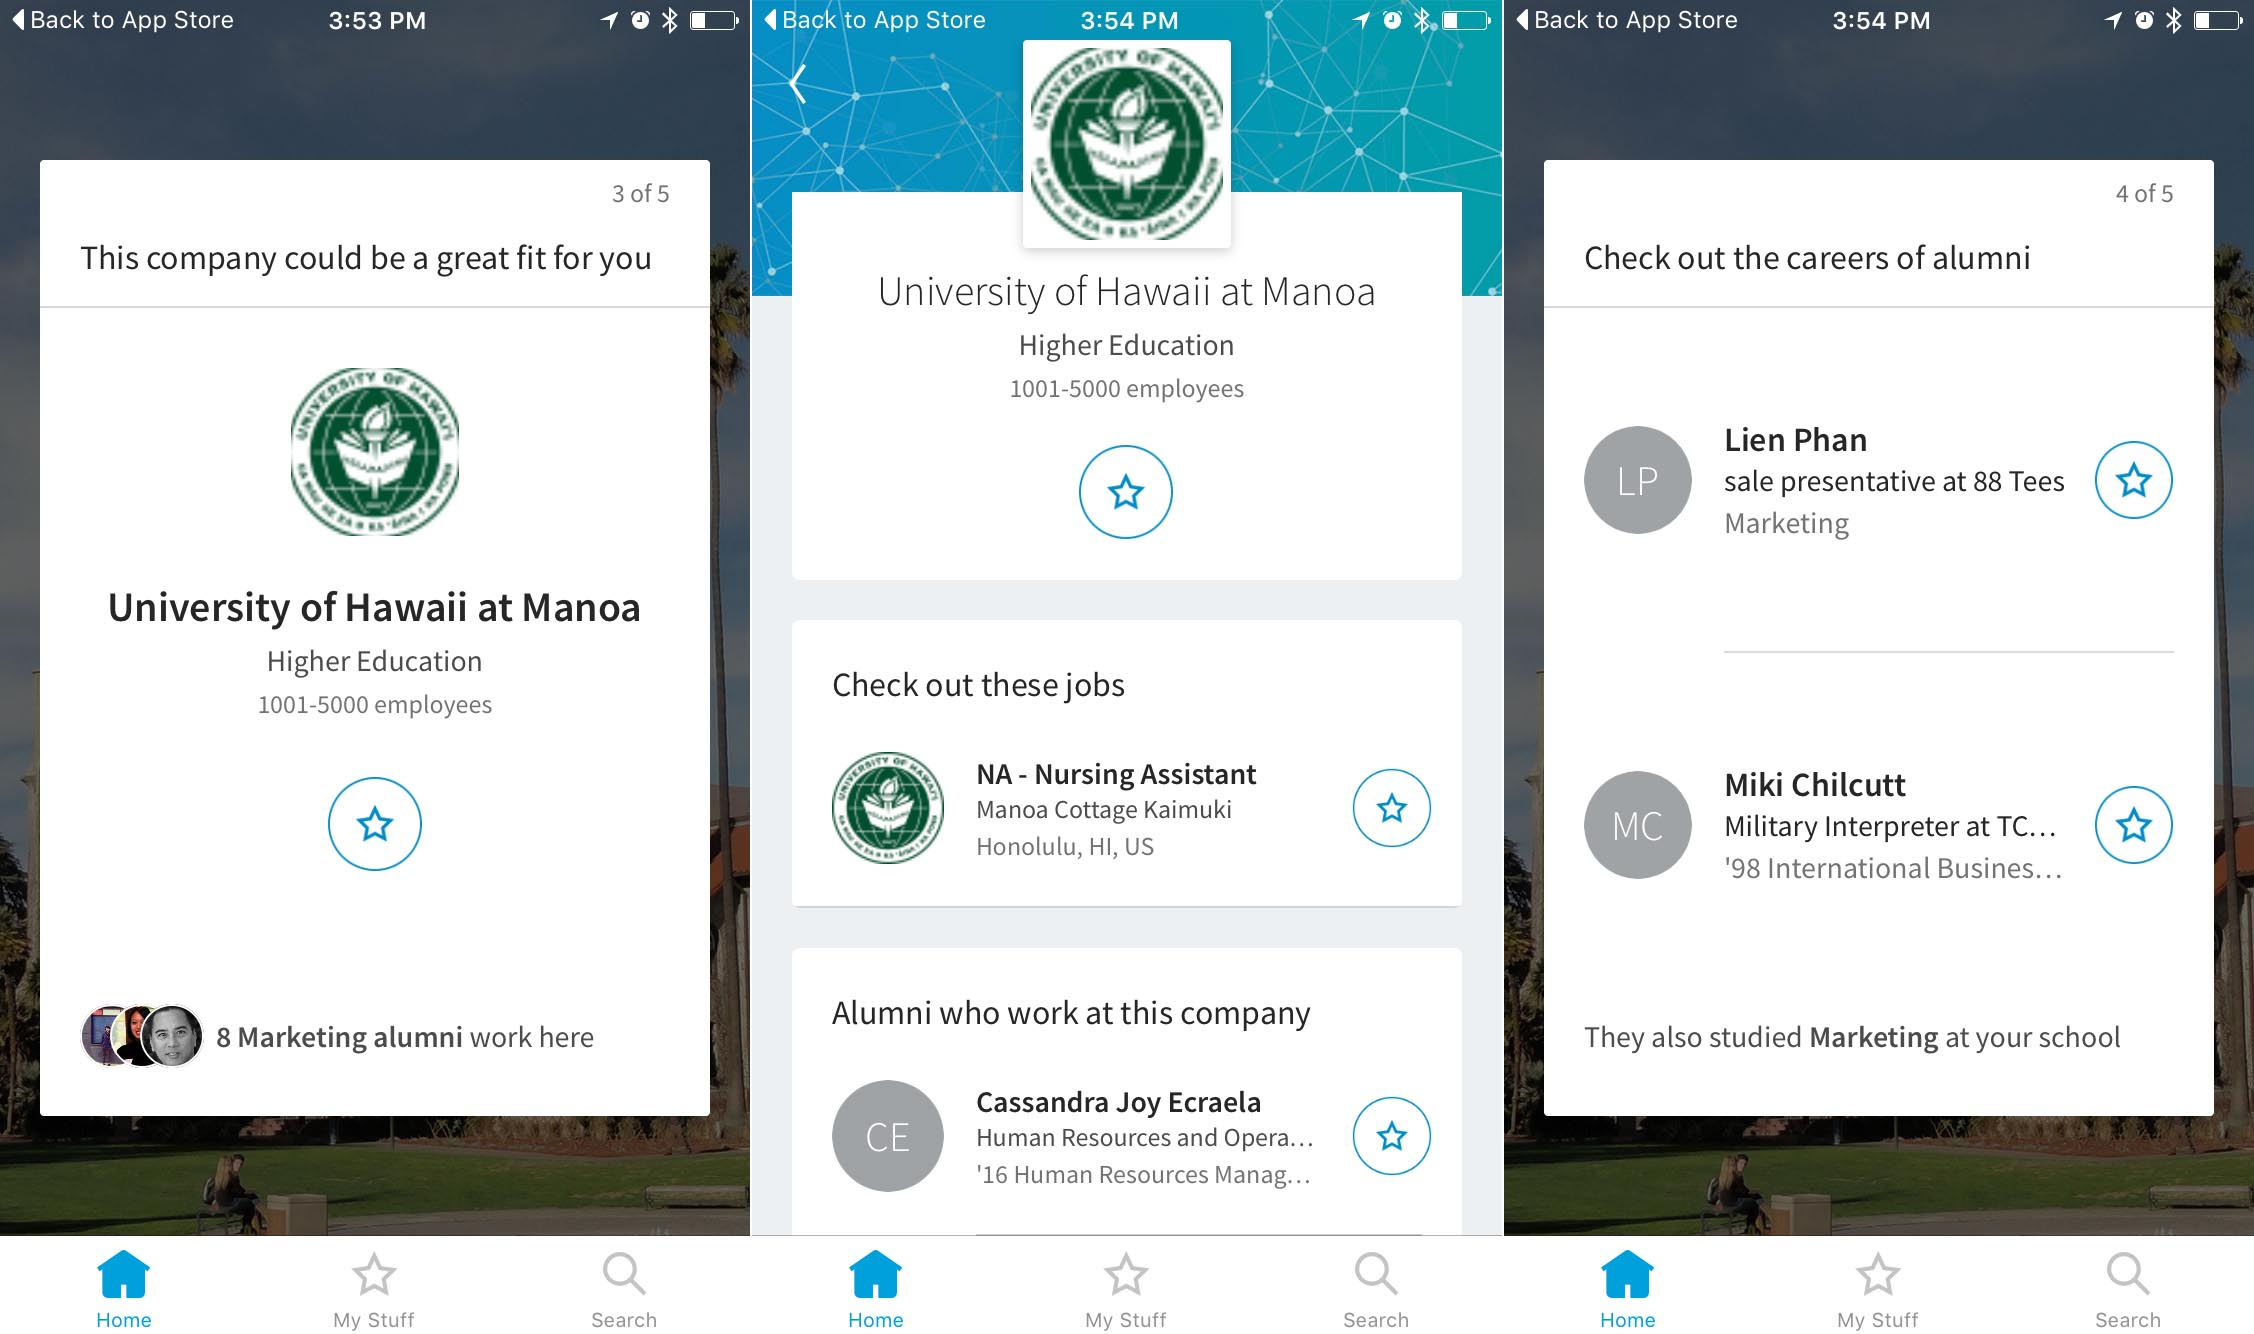 screenshots of linkedins students ios app showing a company you might want to apply for and - Linkedin Jobs Search Finding Jobs Using Linkedin